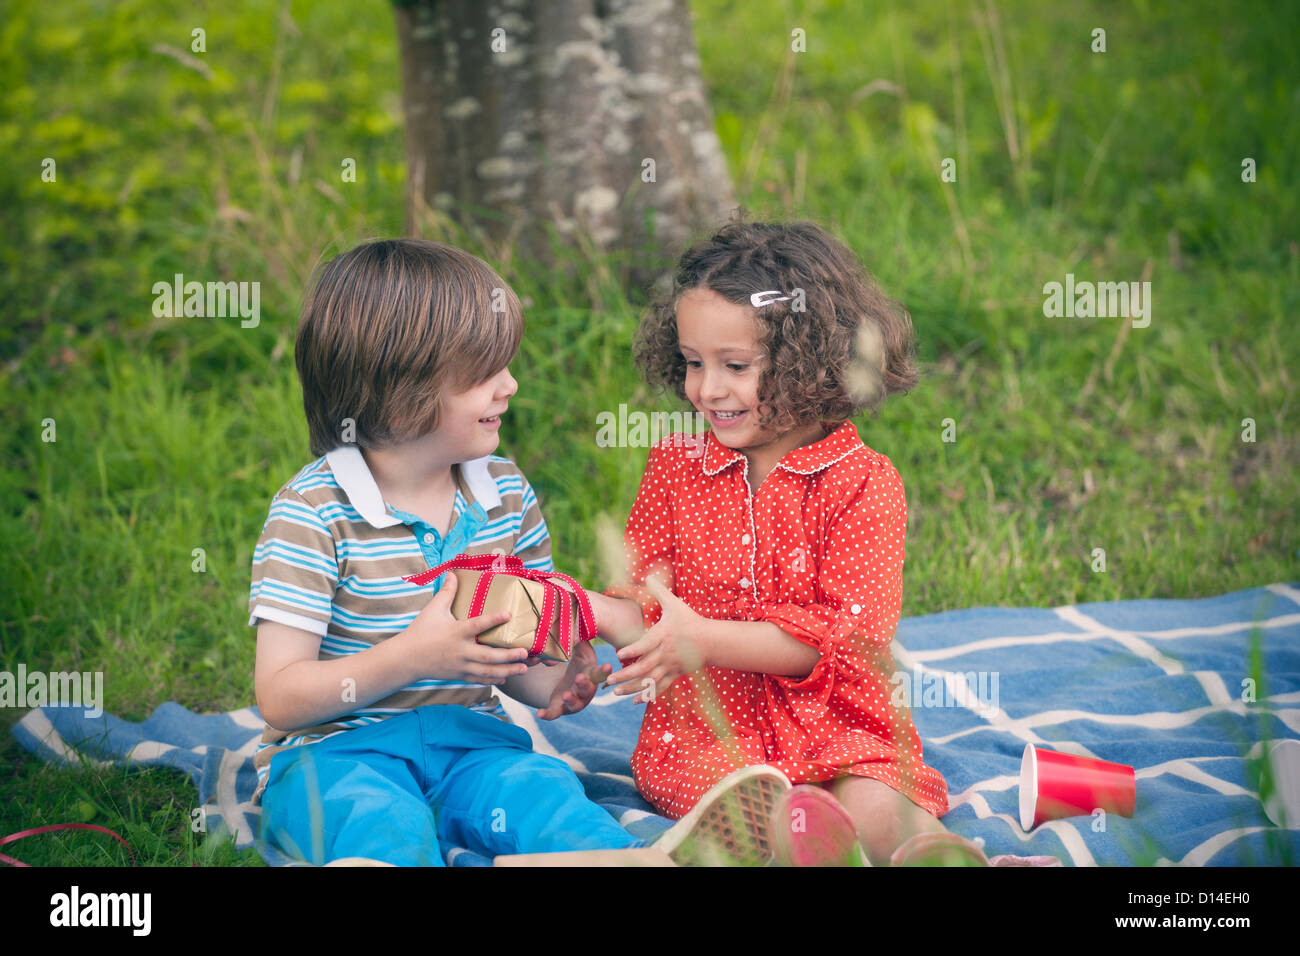 Girl giving gift at birthday picnic - Stock Image